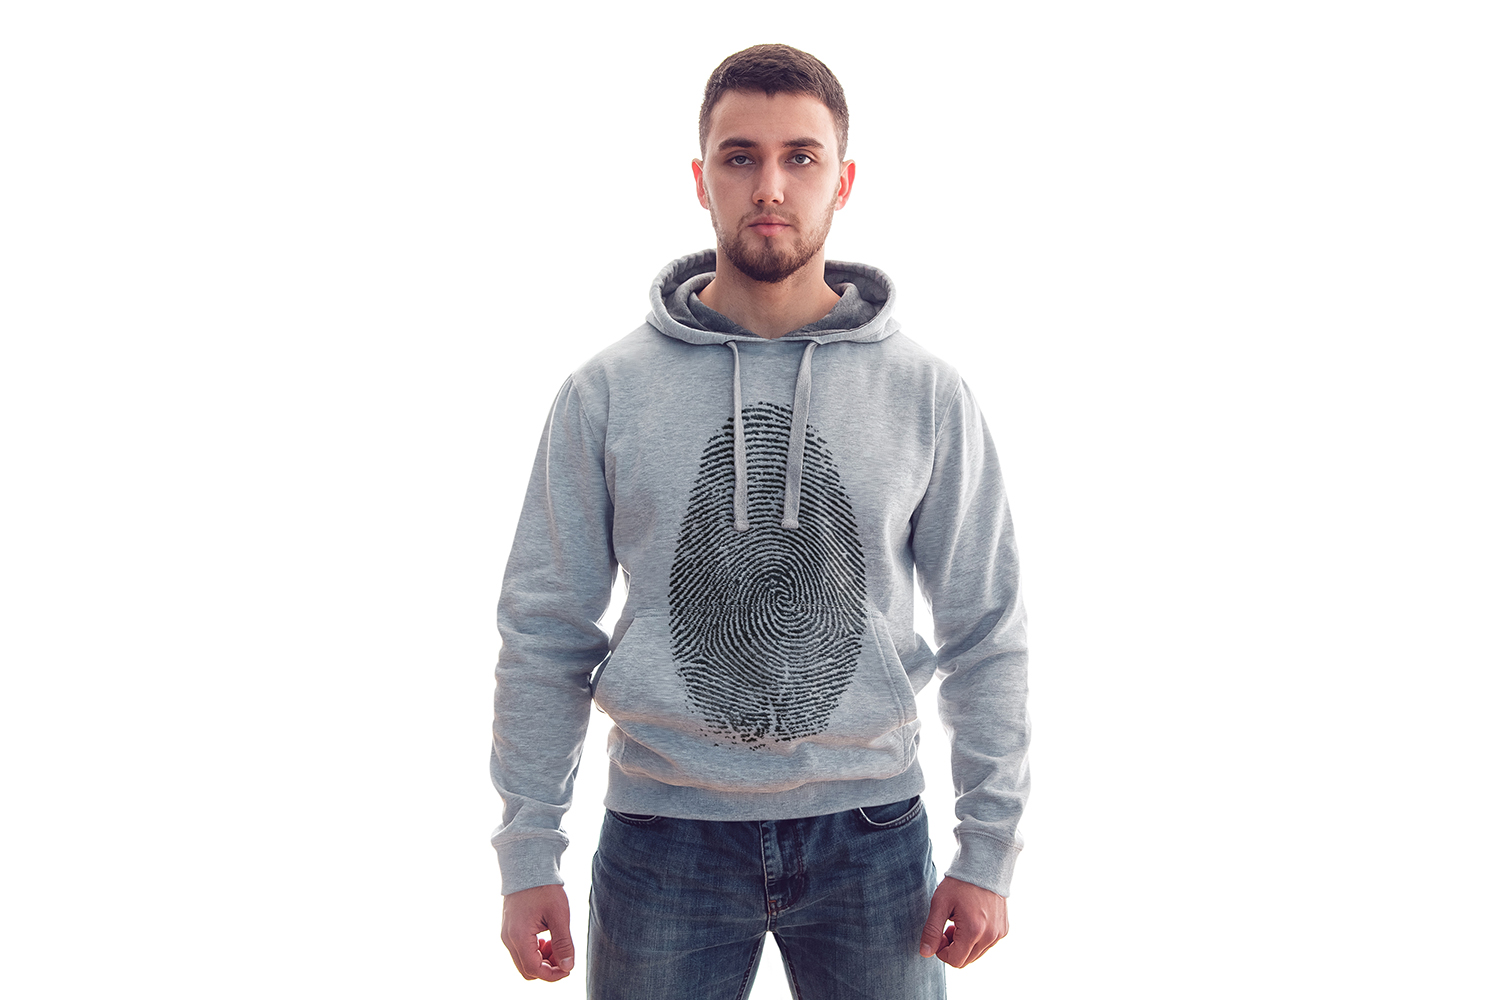 Men's Hoodie Mock-Up example image 5